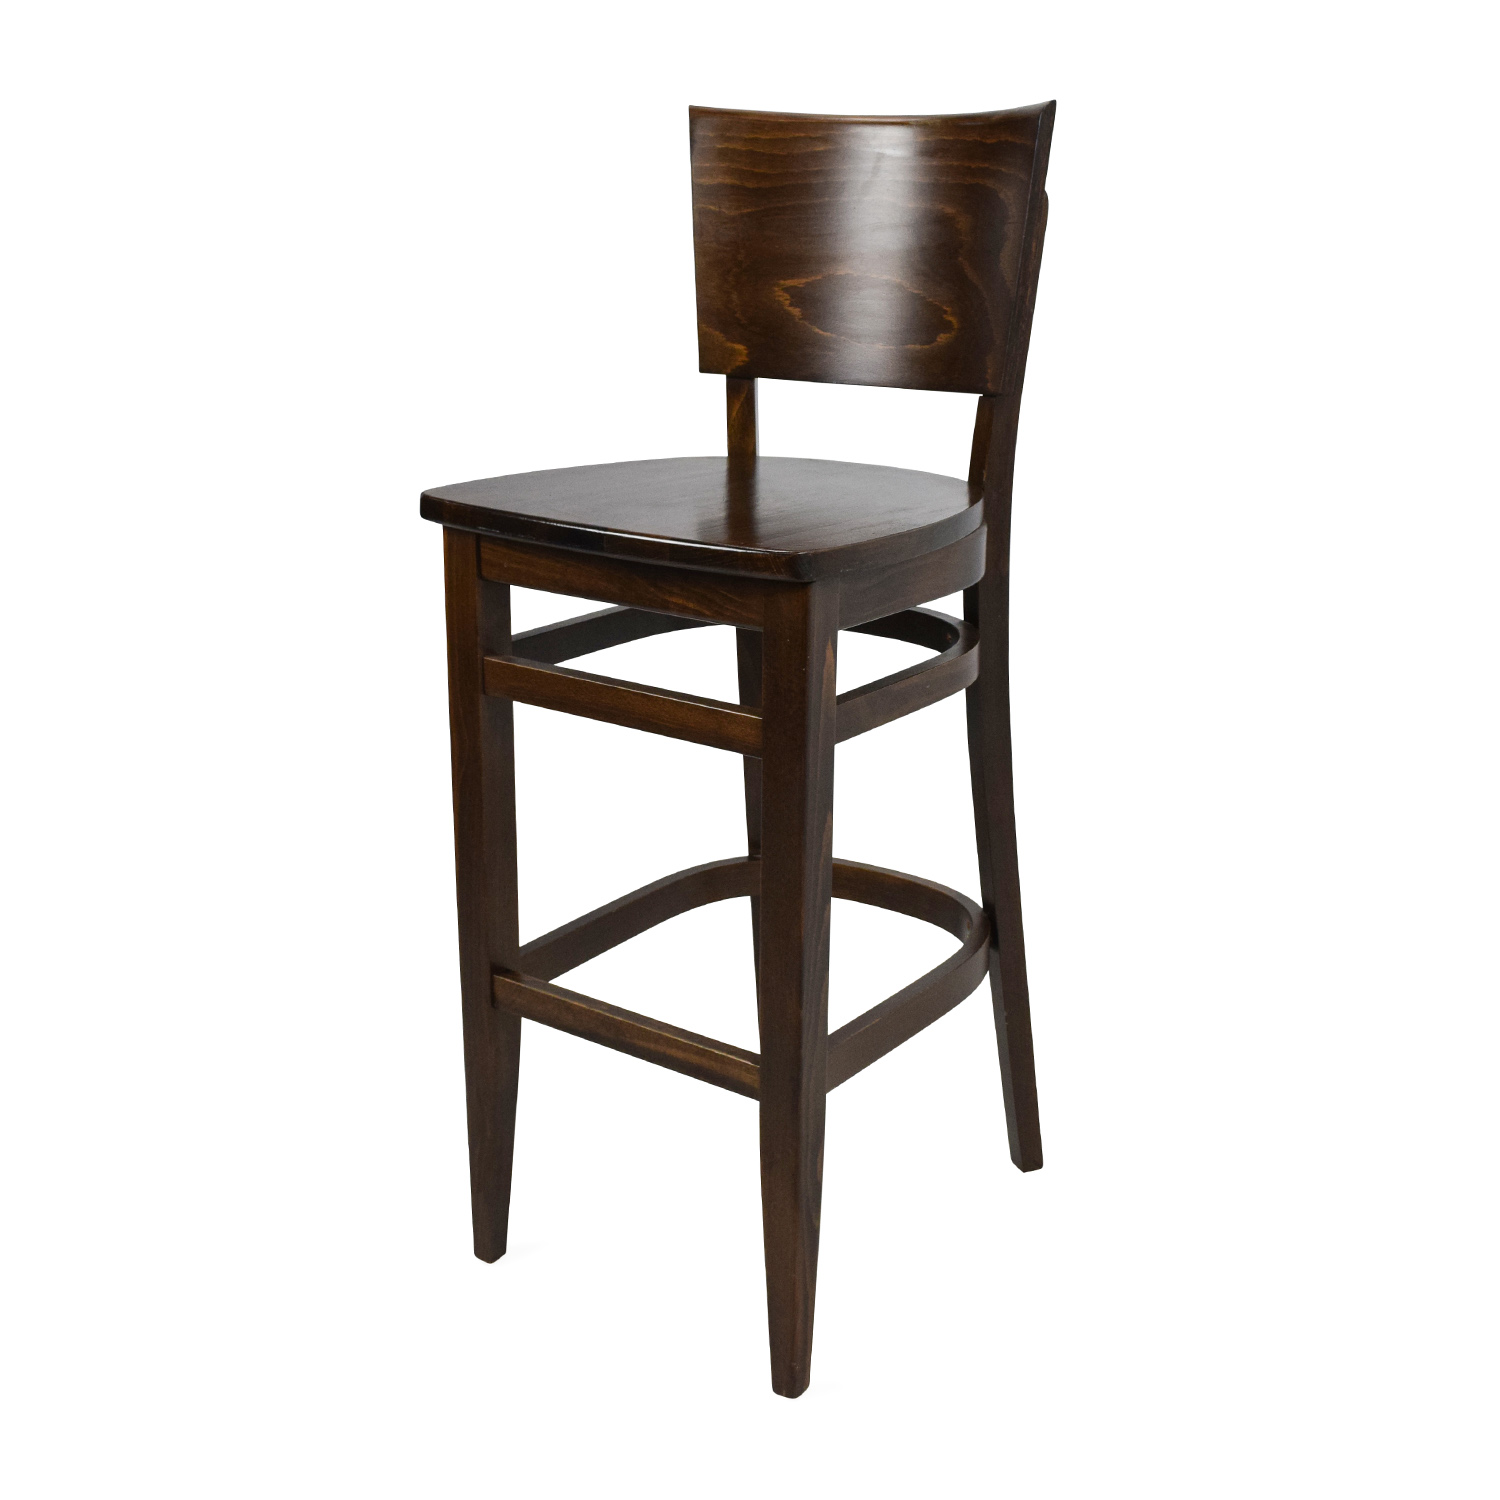 85 Off Design Within Reach Dwr Design Within Reach Kyoto Bar Stool Chairs